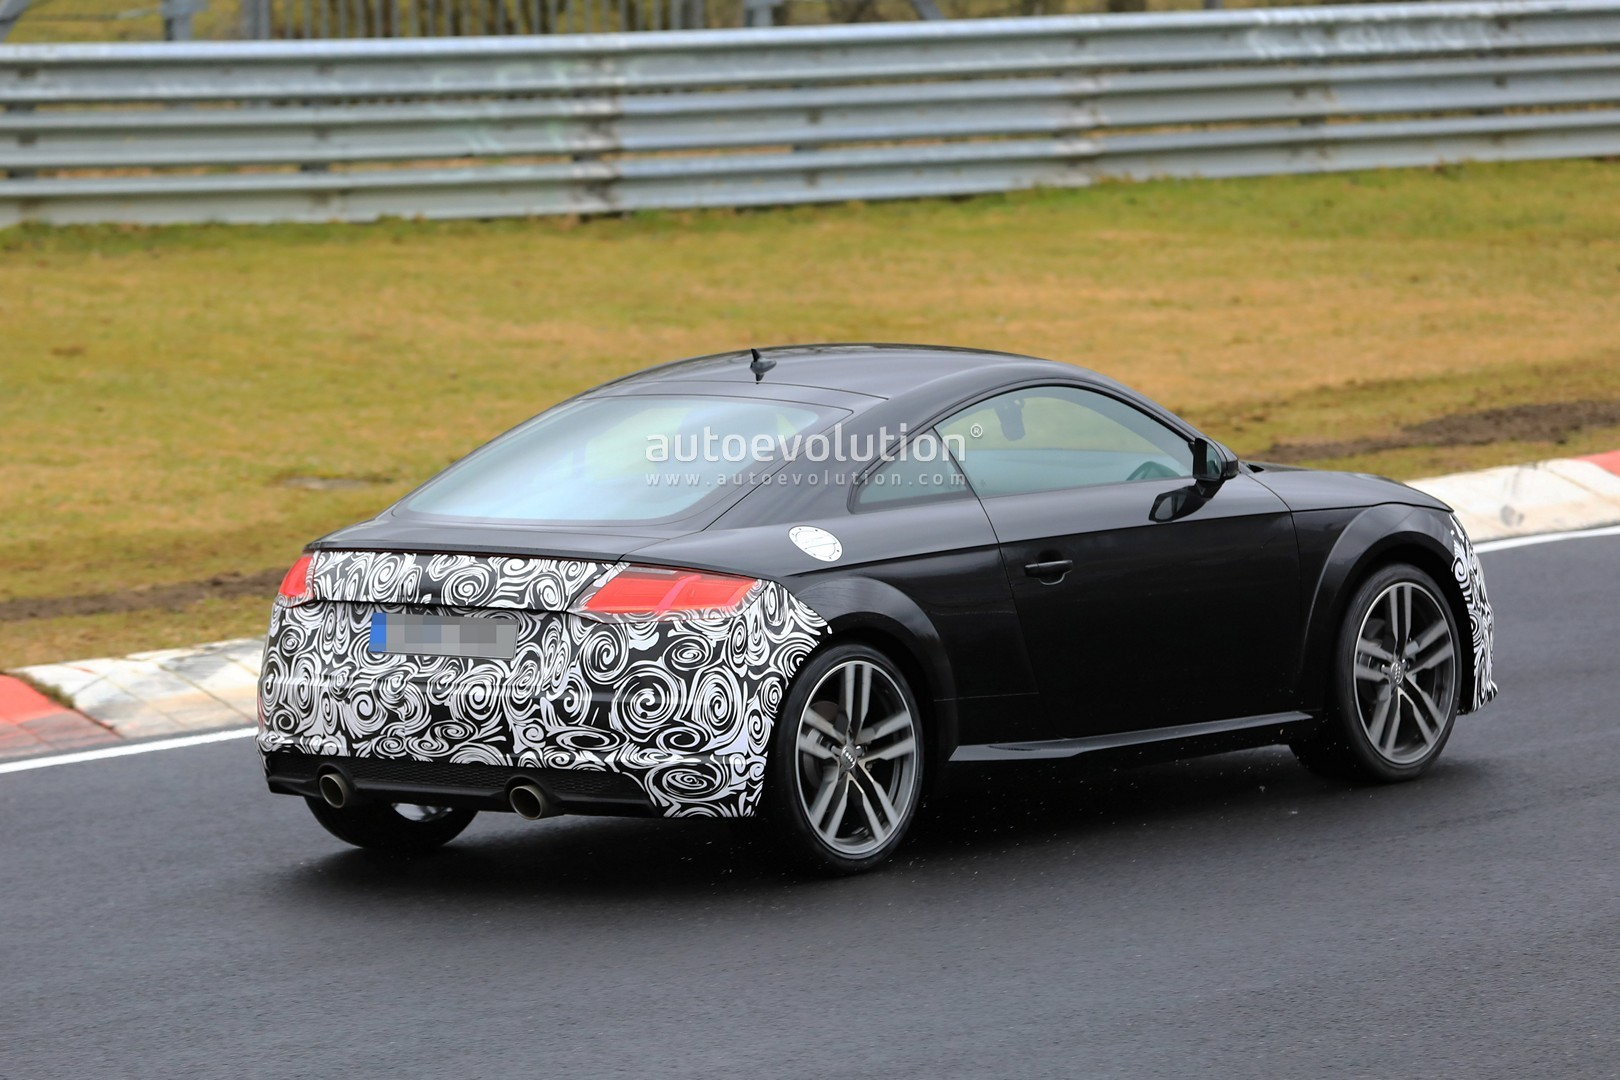 spyshots 2019 audi tt facelift spotted testing on the nurburgring autoevolution. Black Bedroom Furniture Sets. Home Design Ideas